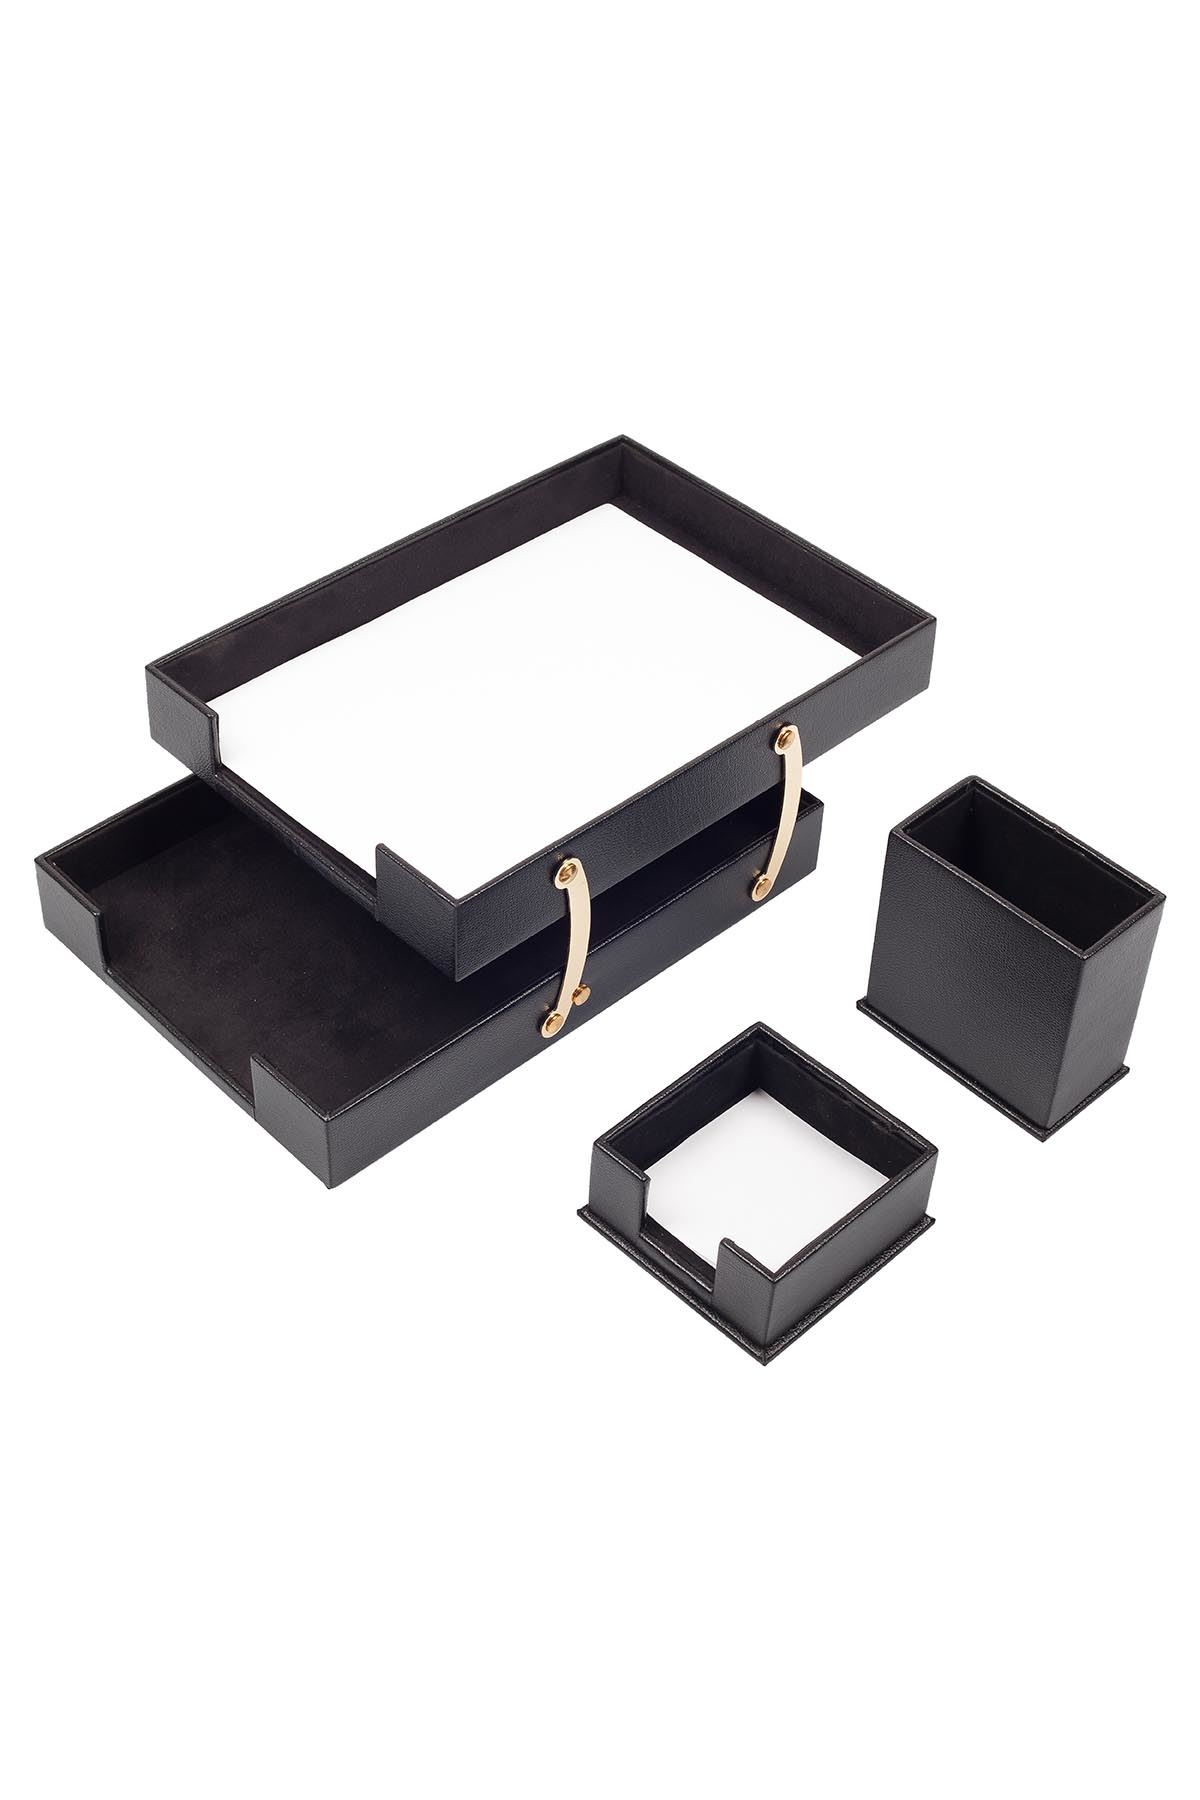 Double Document Tray With 2 Accessories Black| Desk Set Accessories | Desktop Accessories | Desk Accessories | Desk Organizers